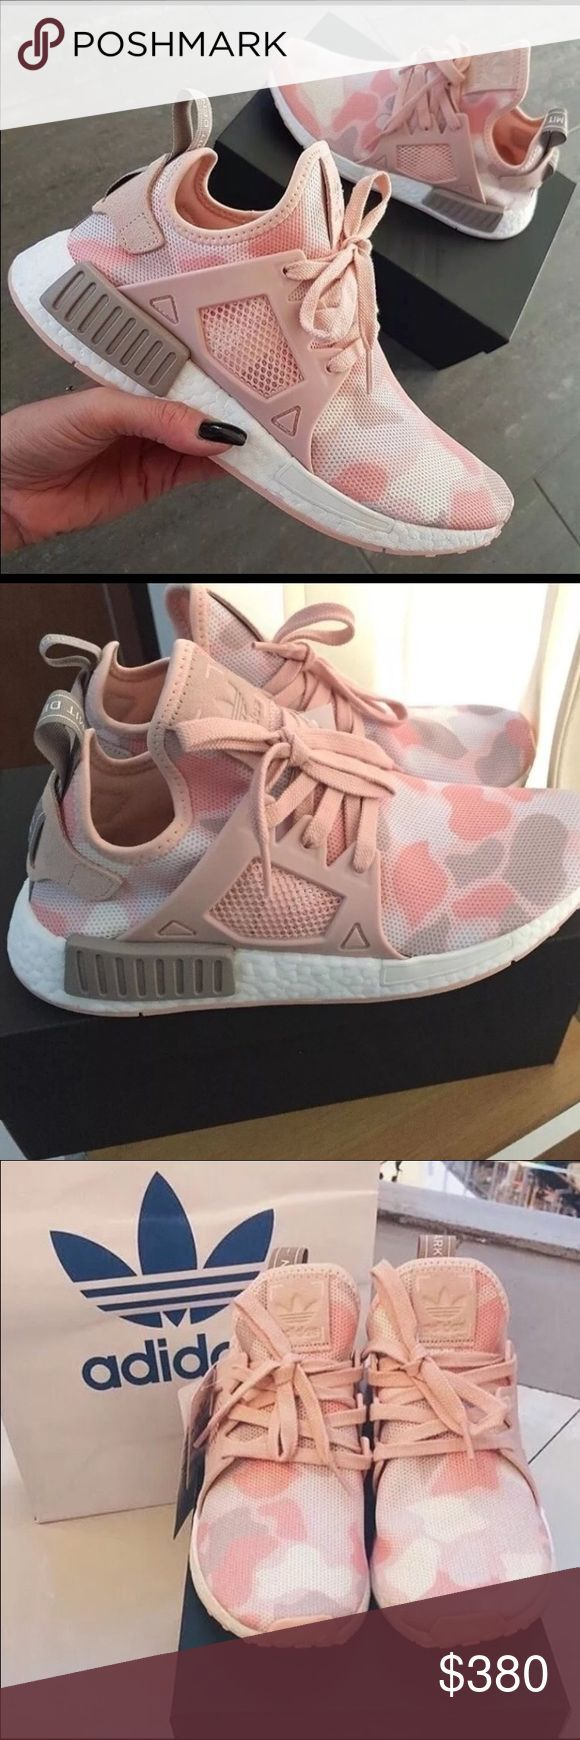 badf5fb3f907d New in box • Adidas NMD XR1 Women Pink Duck Camo New Adidas NMD XR1 Women